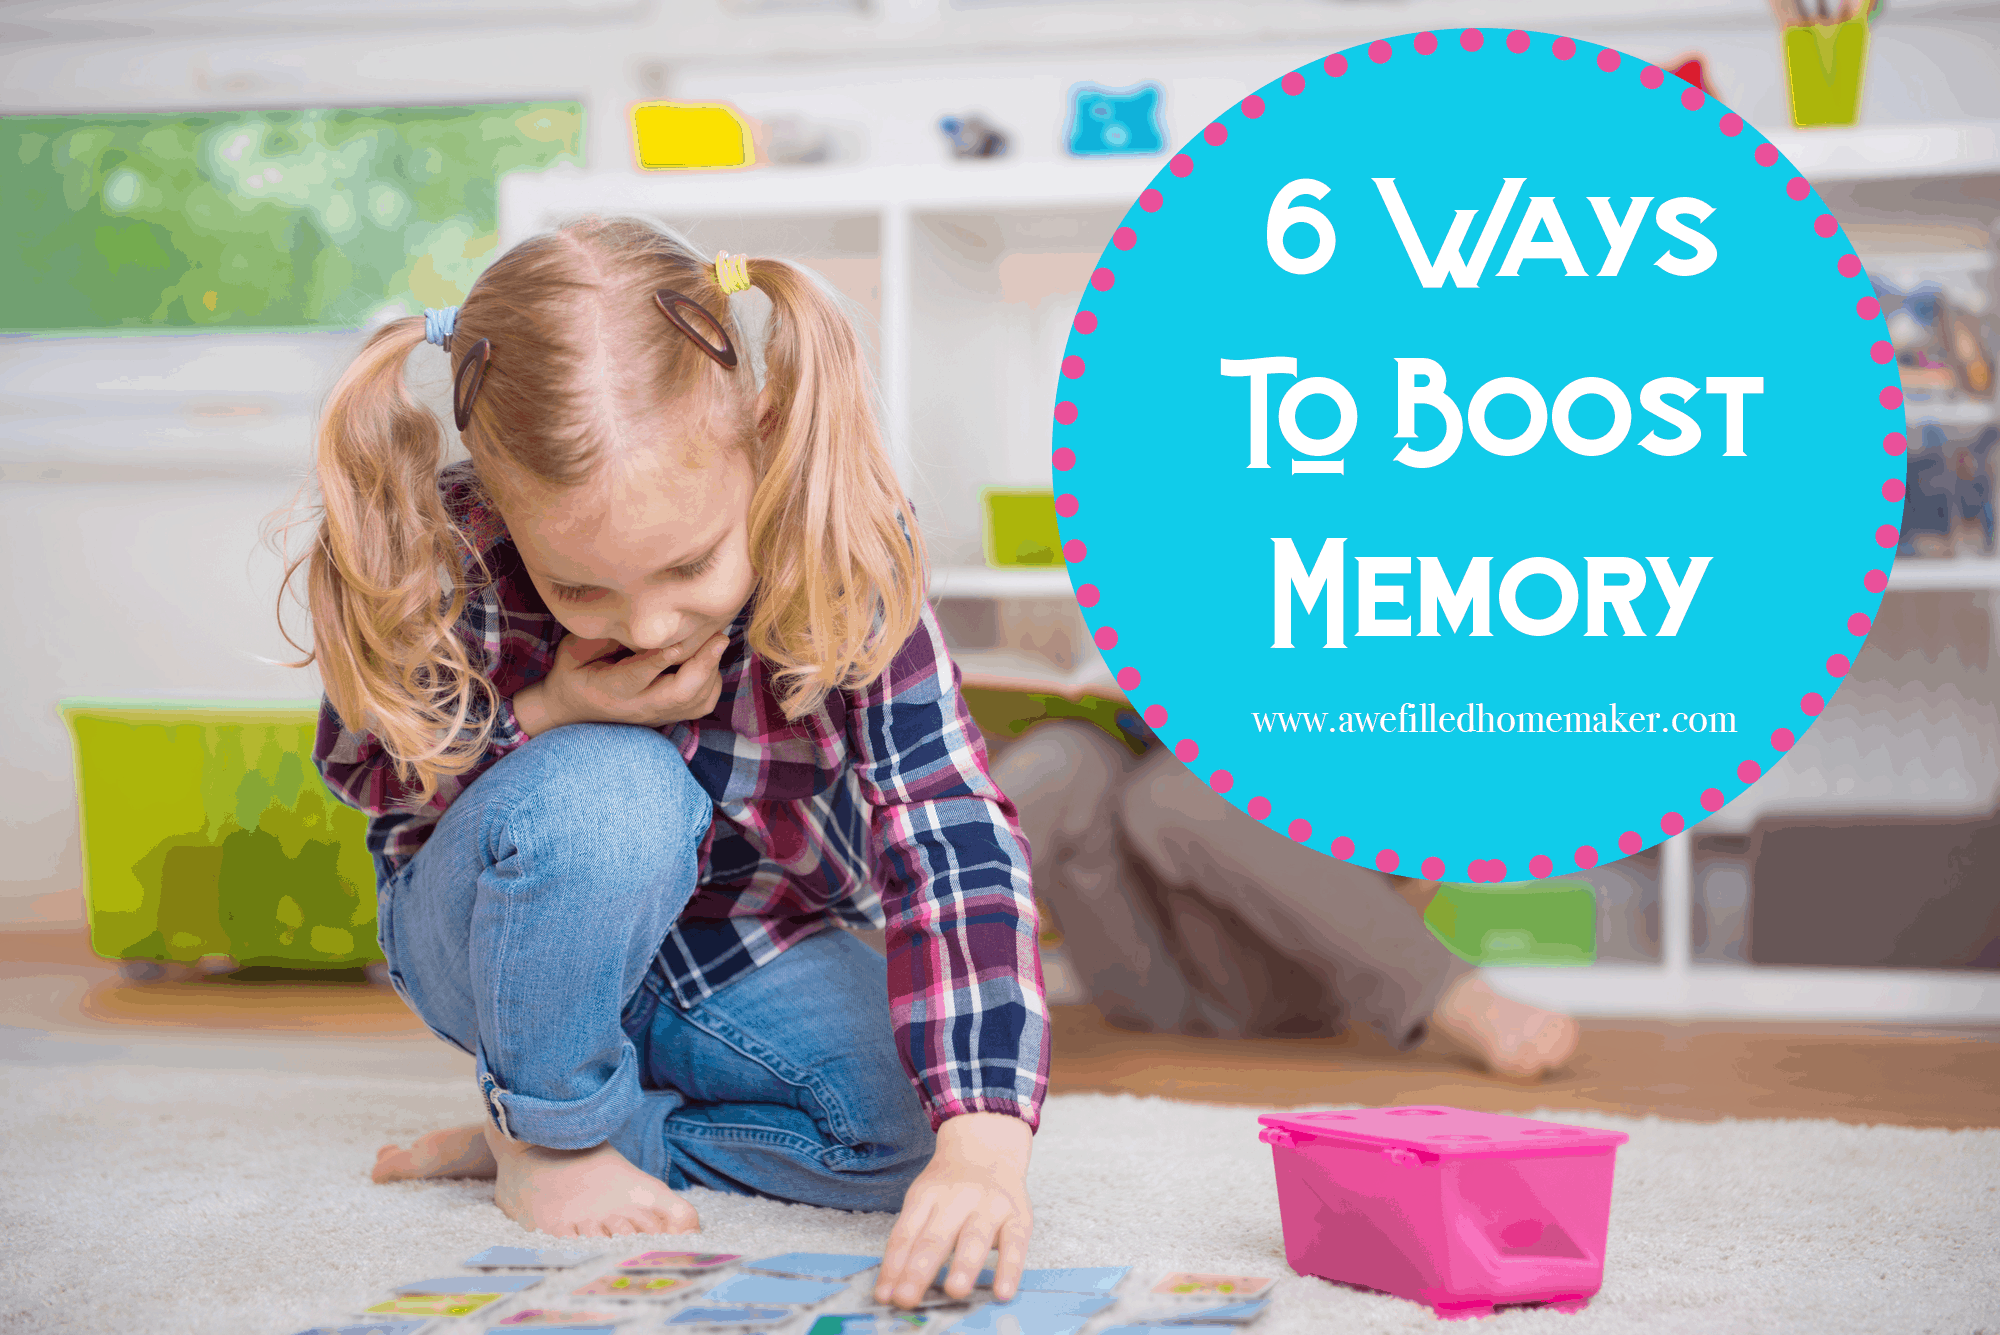 Six Ways to Boost Memory